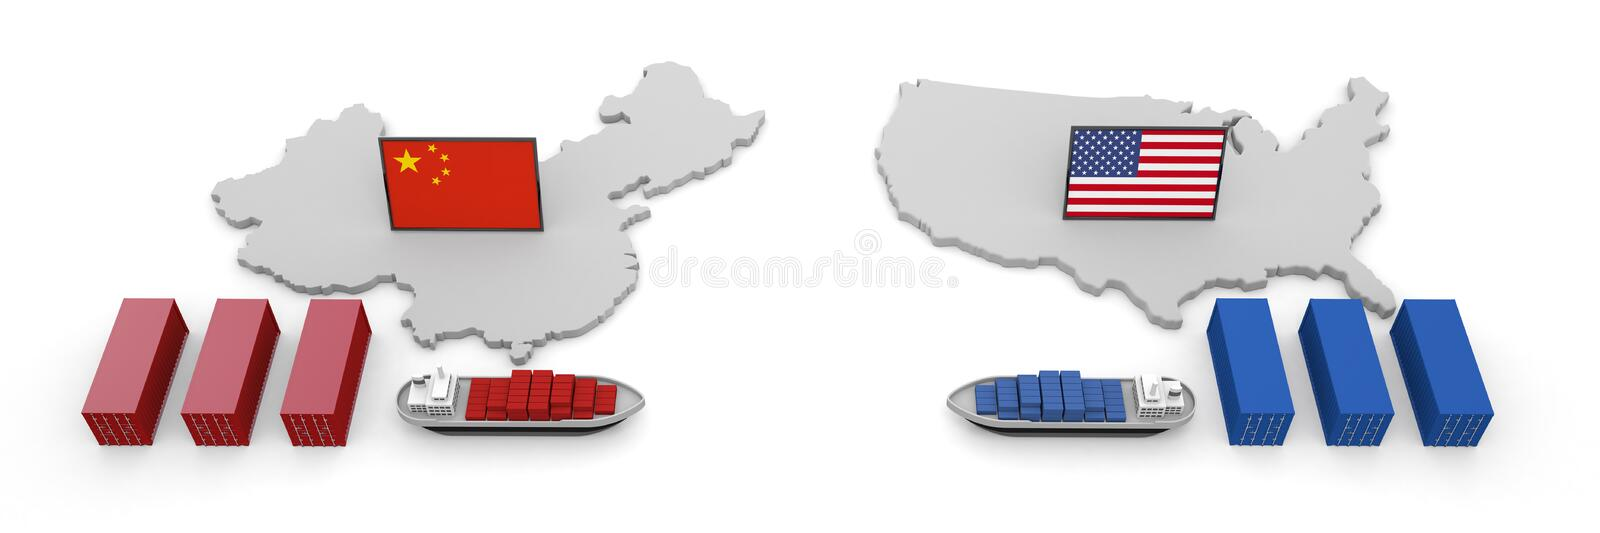 America China Trade Problem Tariff 3D illustration. US-China trade issues. Trade friction takes place. Difficult problem. USA map and flag. China map and flag royalty free illustration